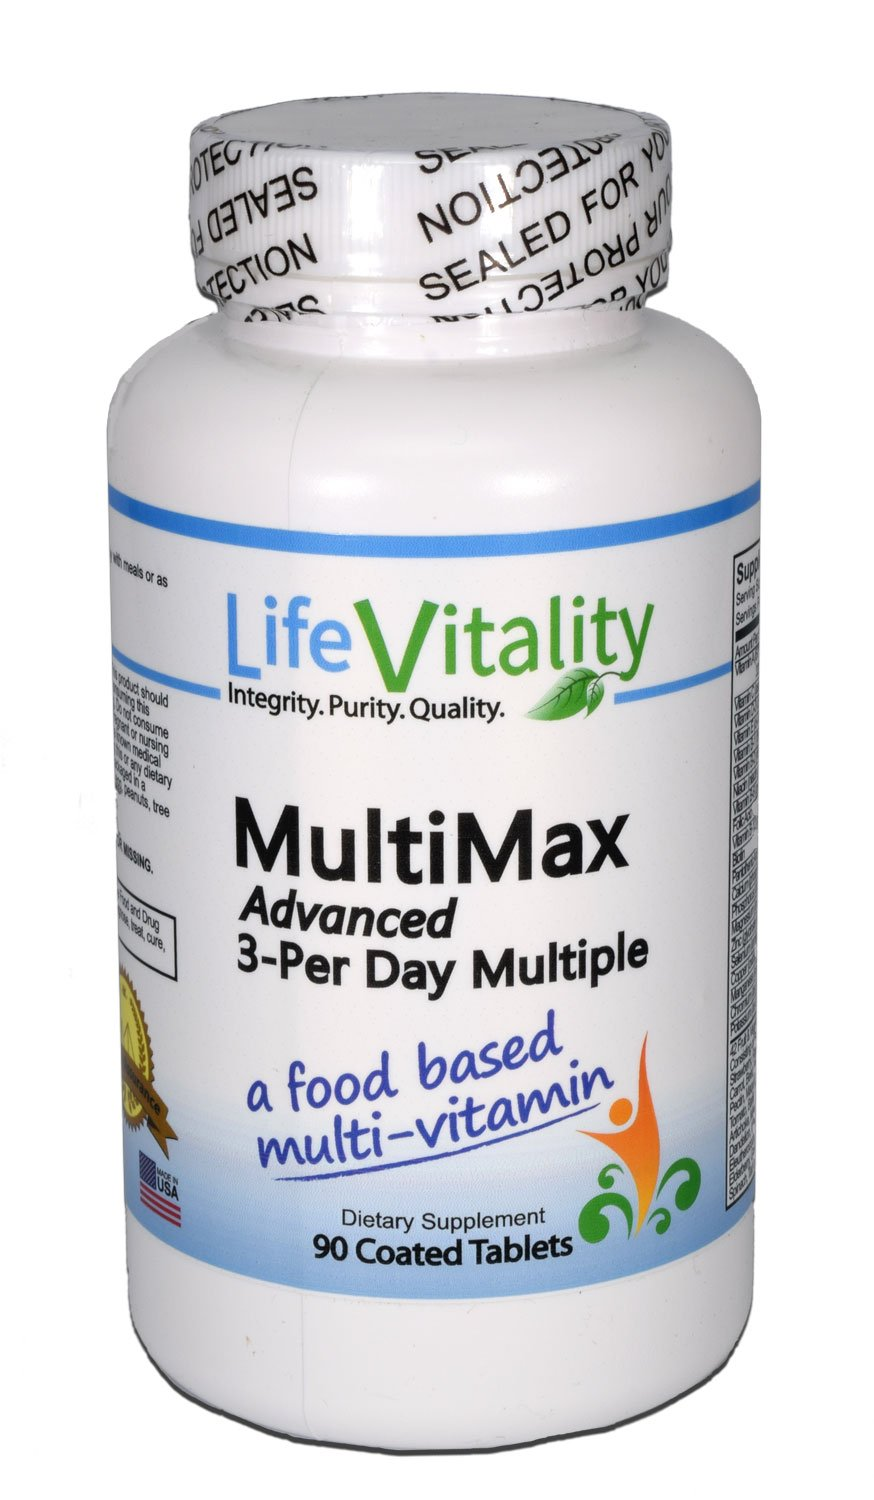 Amazon.com: Life Vitality MultiMax Advanced 3-per-day Multiple, a Food Based Multi-vitamin, 90 Coated Tablets: Health & Personal Care